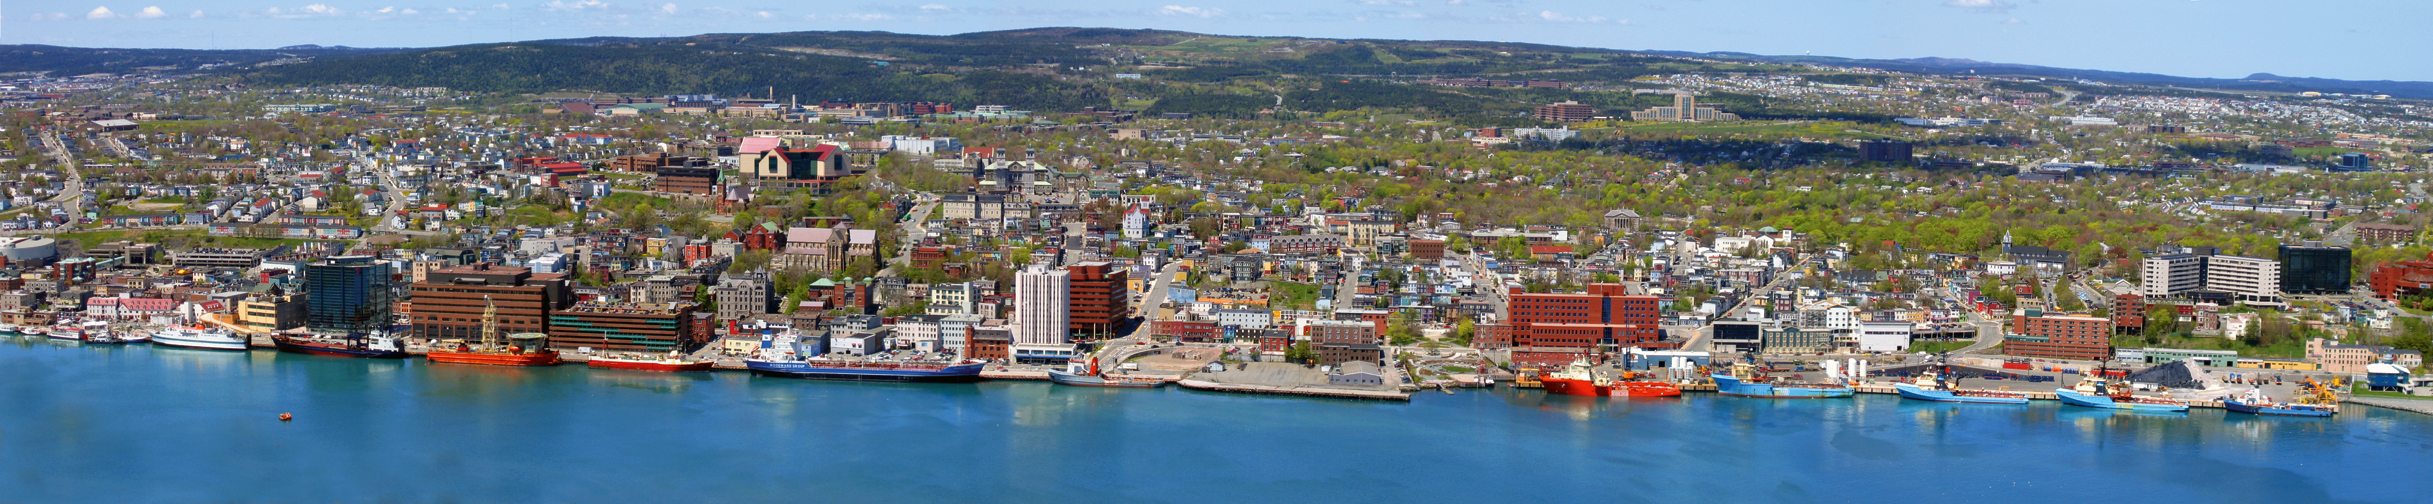 St. John's (NL) Canada  city pictures gallery : St.John's NFLD Wikipedia, the free encyclopedia